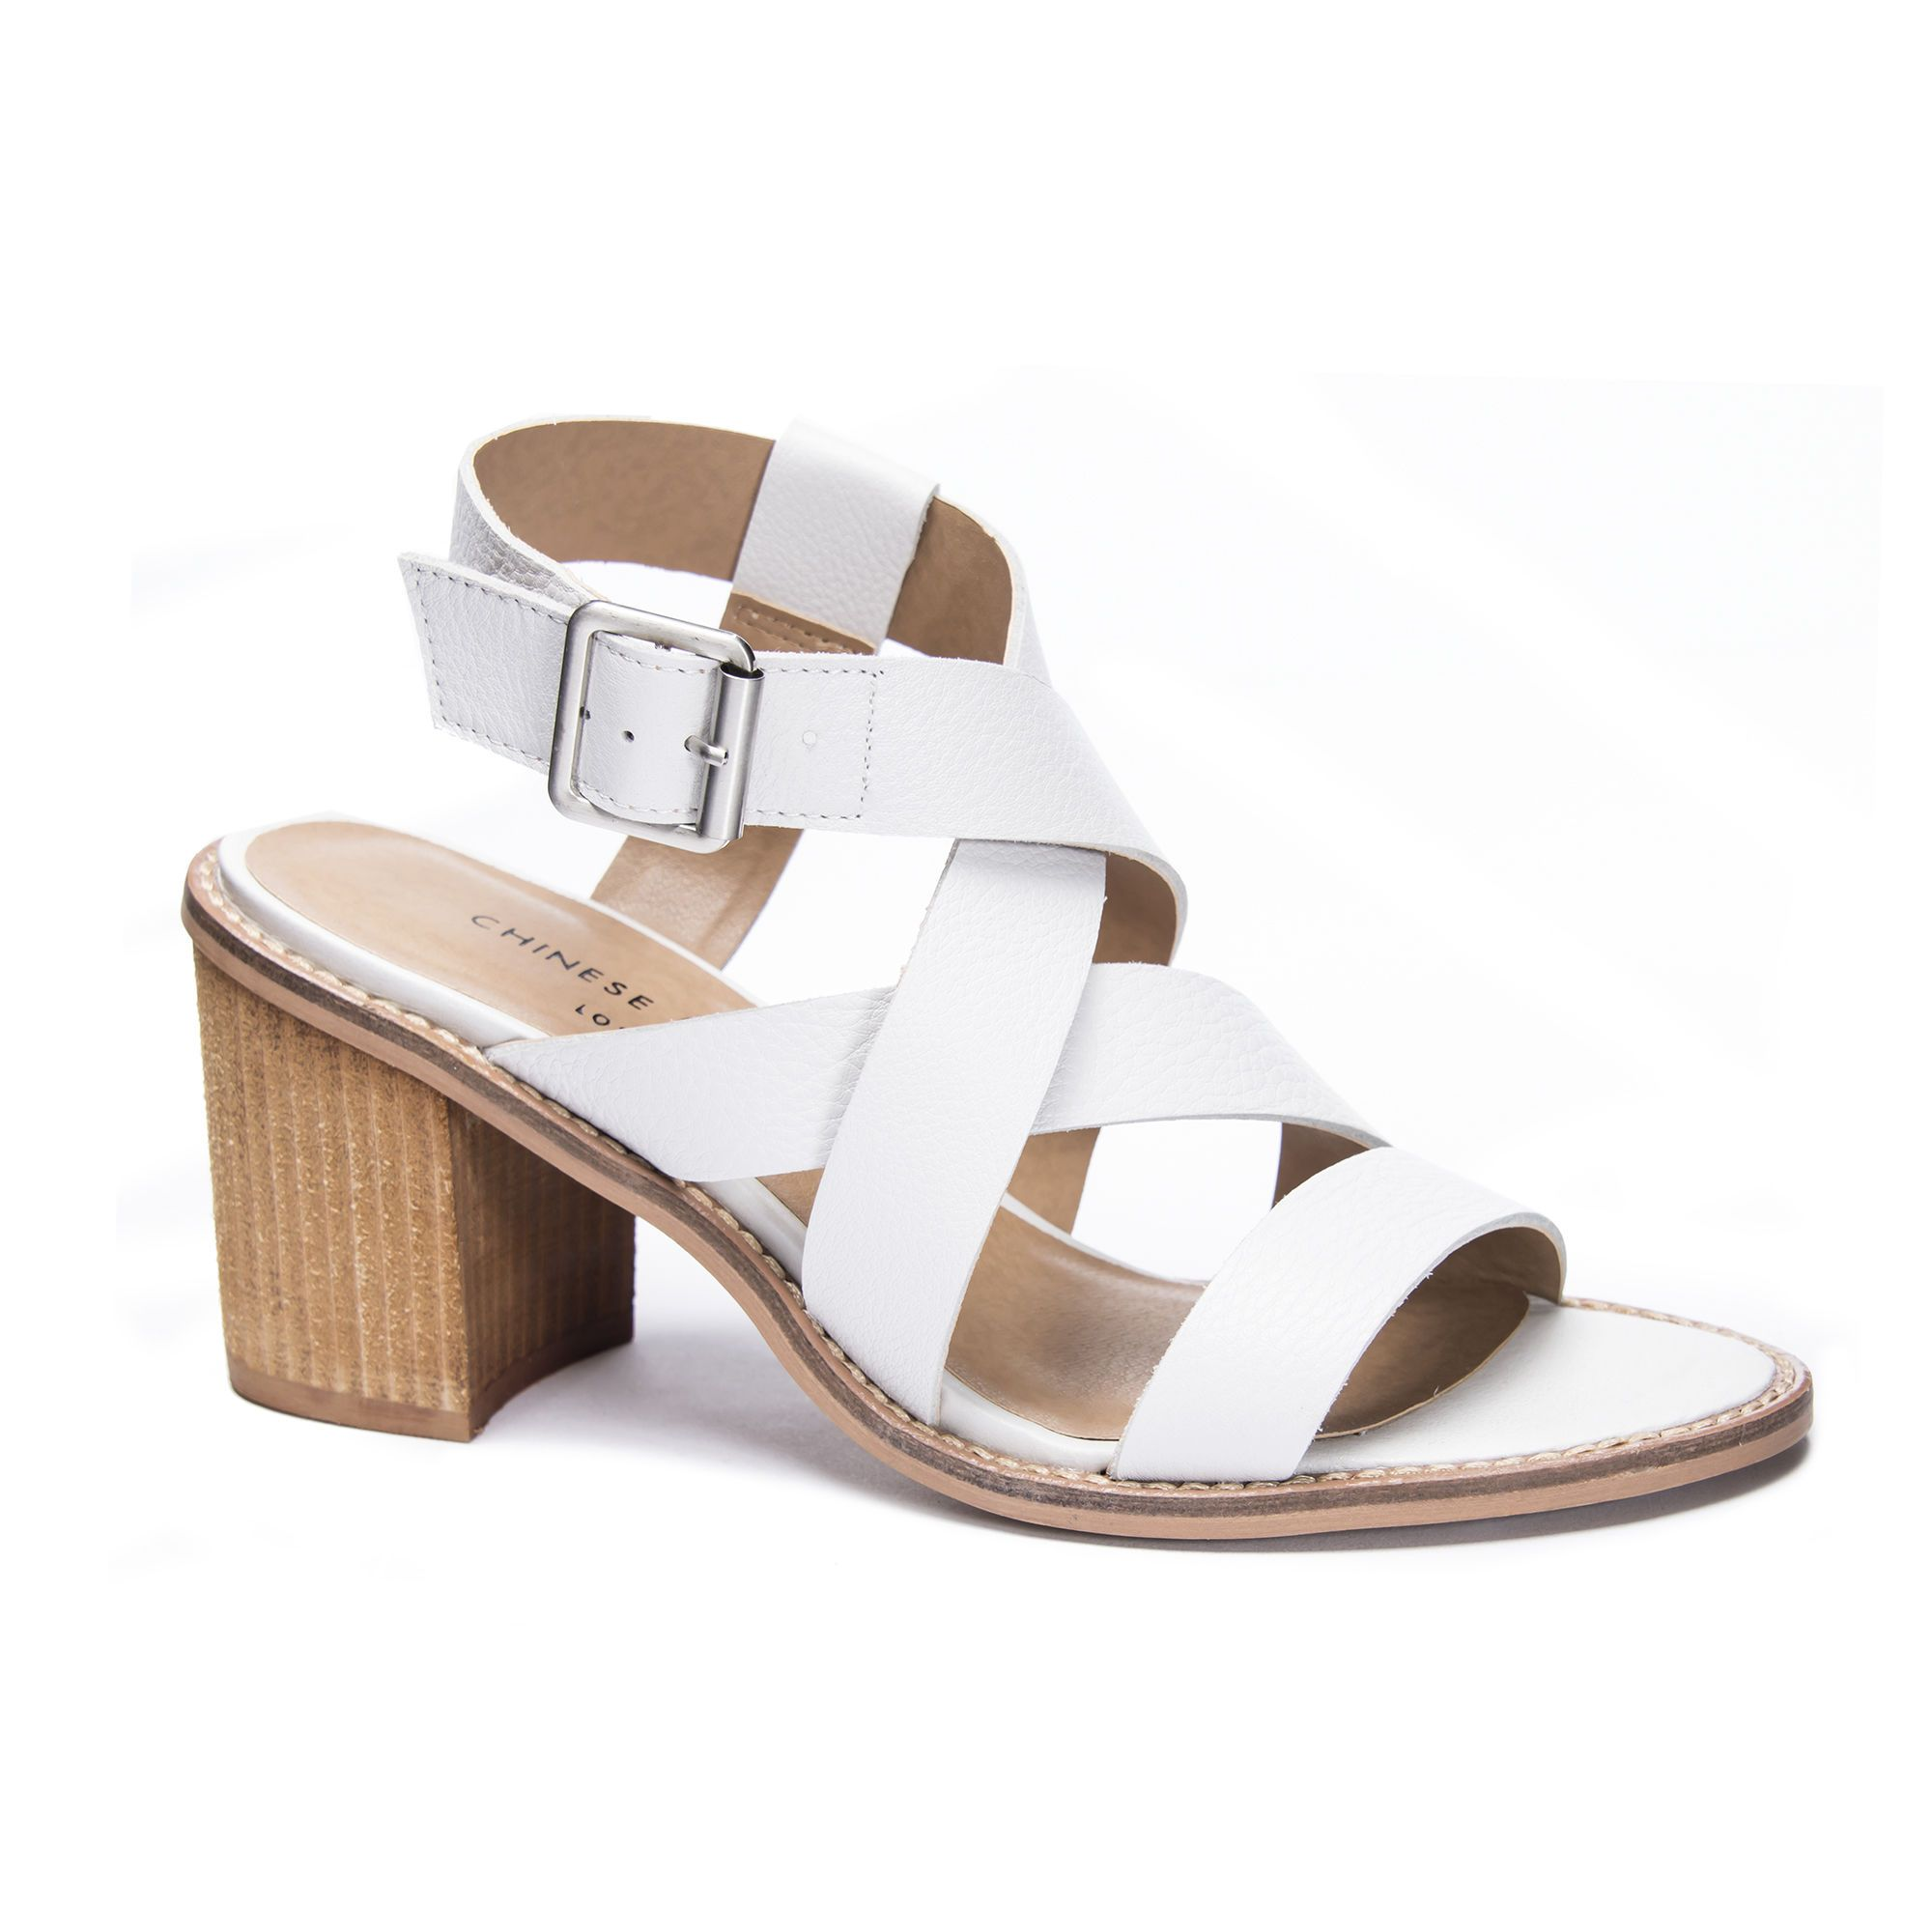 Chinese Laundry Cacey Block Heel Sandals Sandals Block Heels